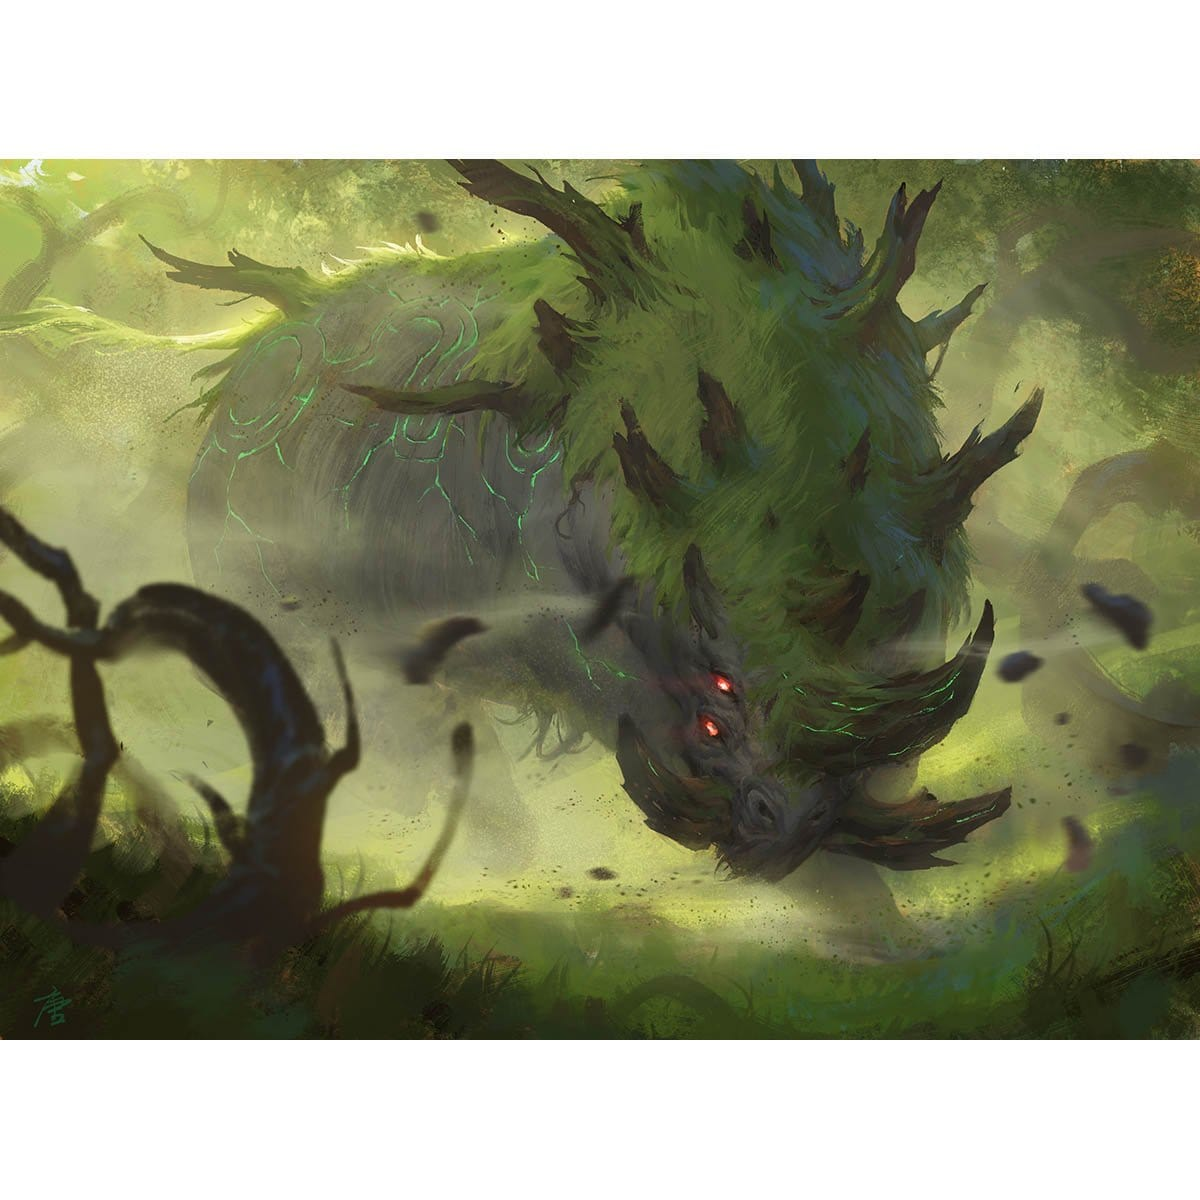 Gnarlback Rhino Print - Print - Original Magic Art - Accessories for Magic the Gathering and other card games